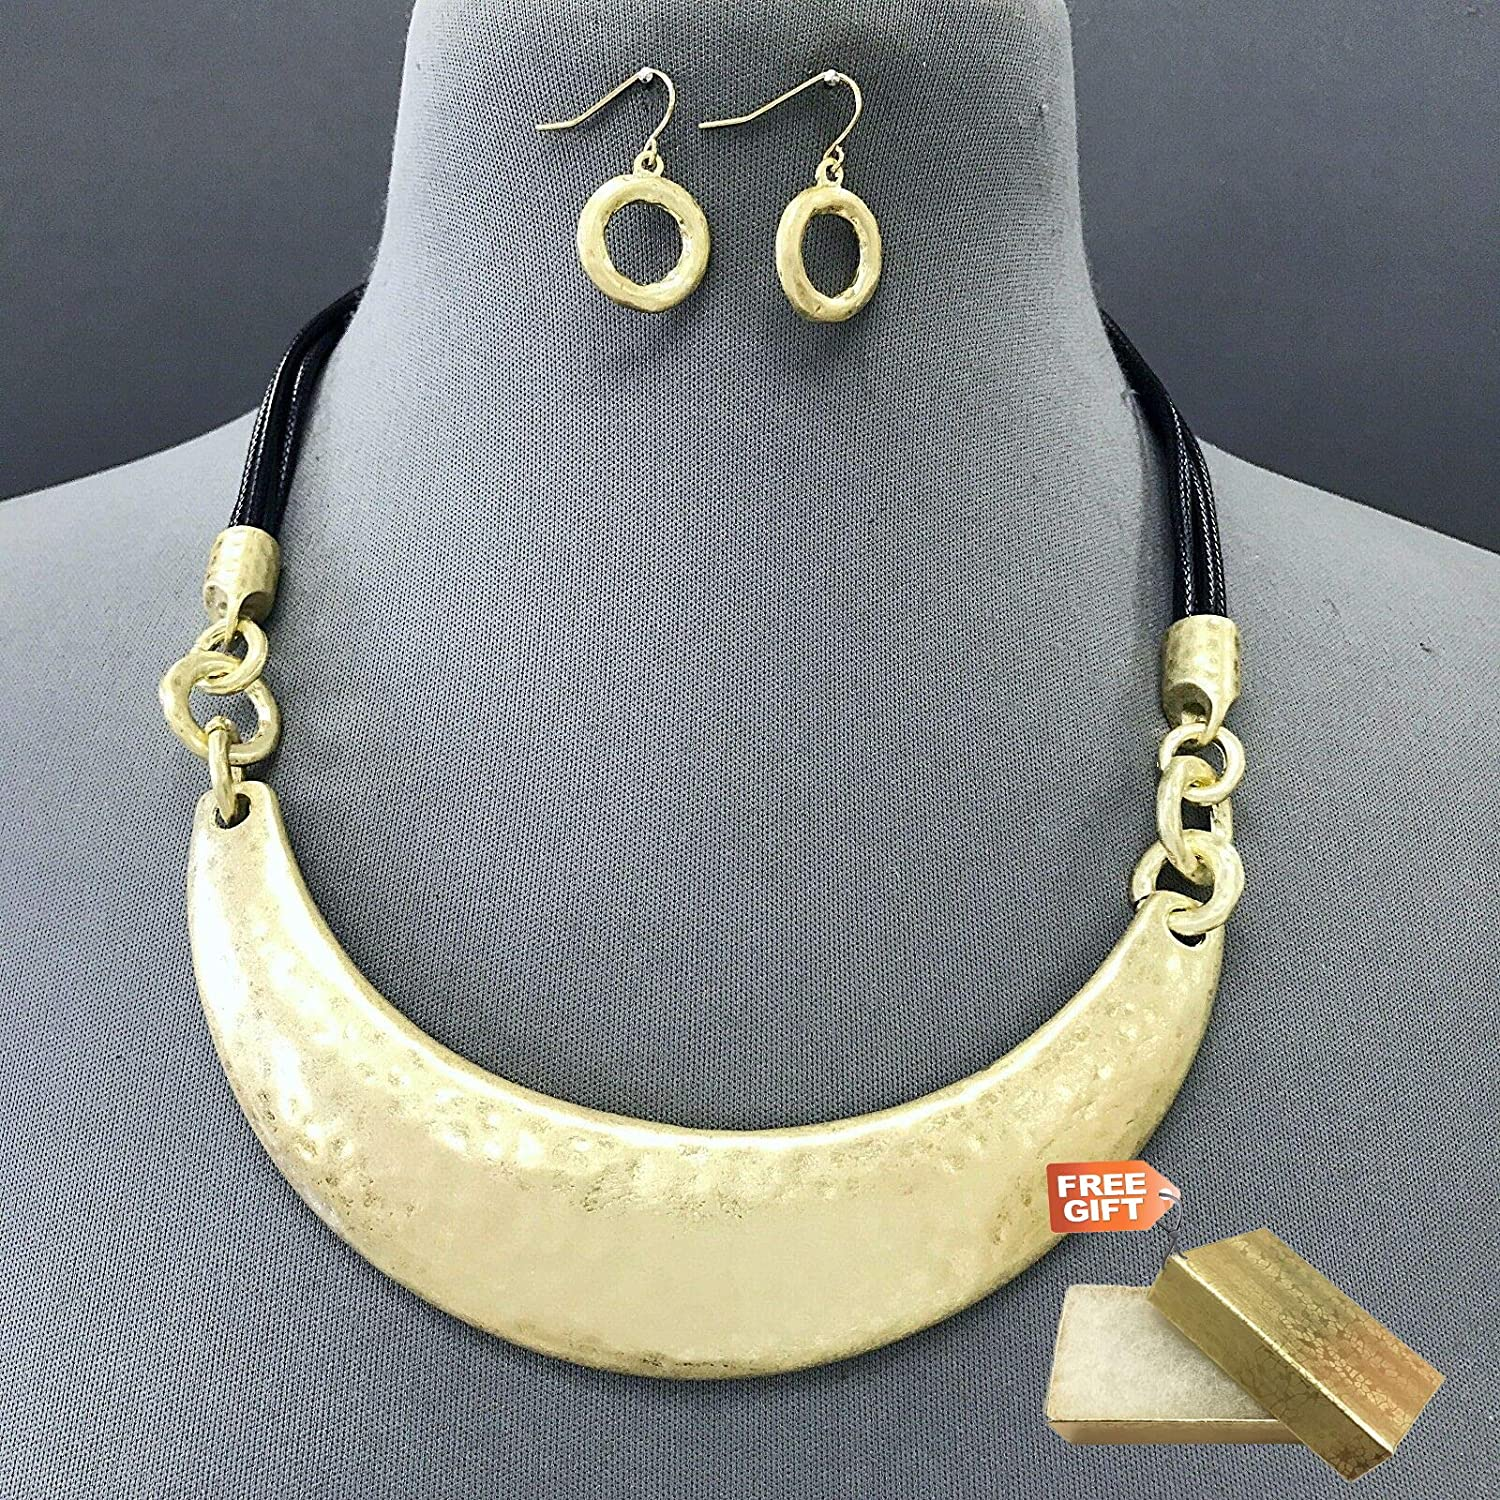 Gold Finished Multi Black Strings Half Circle Moon Shapes Necklace /& Earring Set For Women Gold Cotton Filled Gift Box for Free